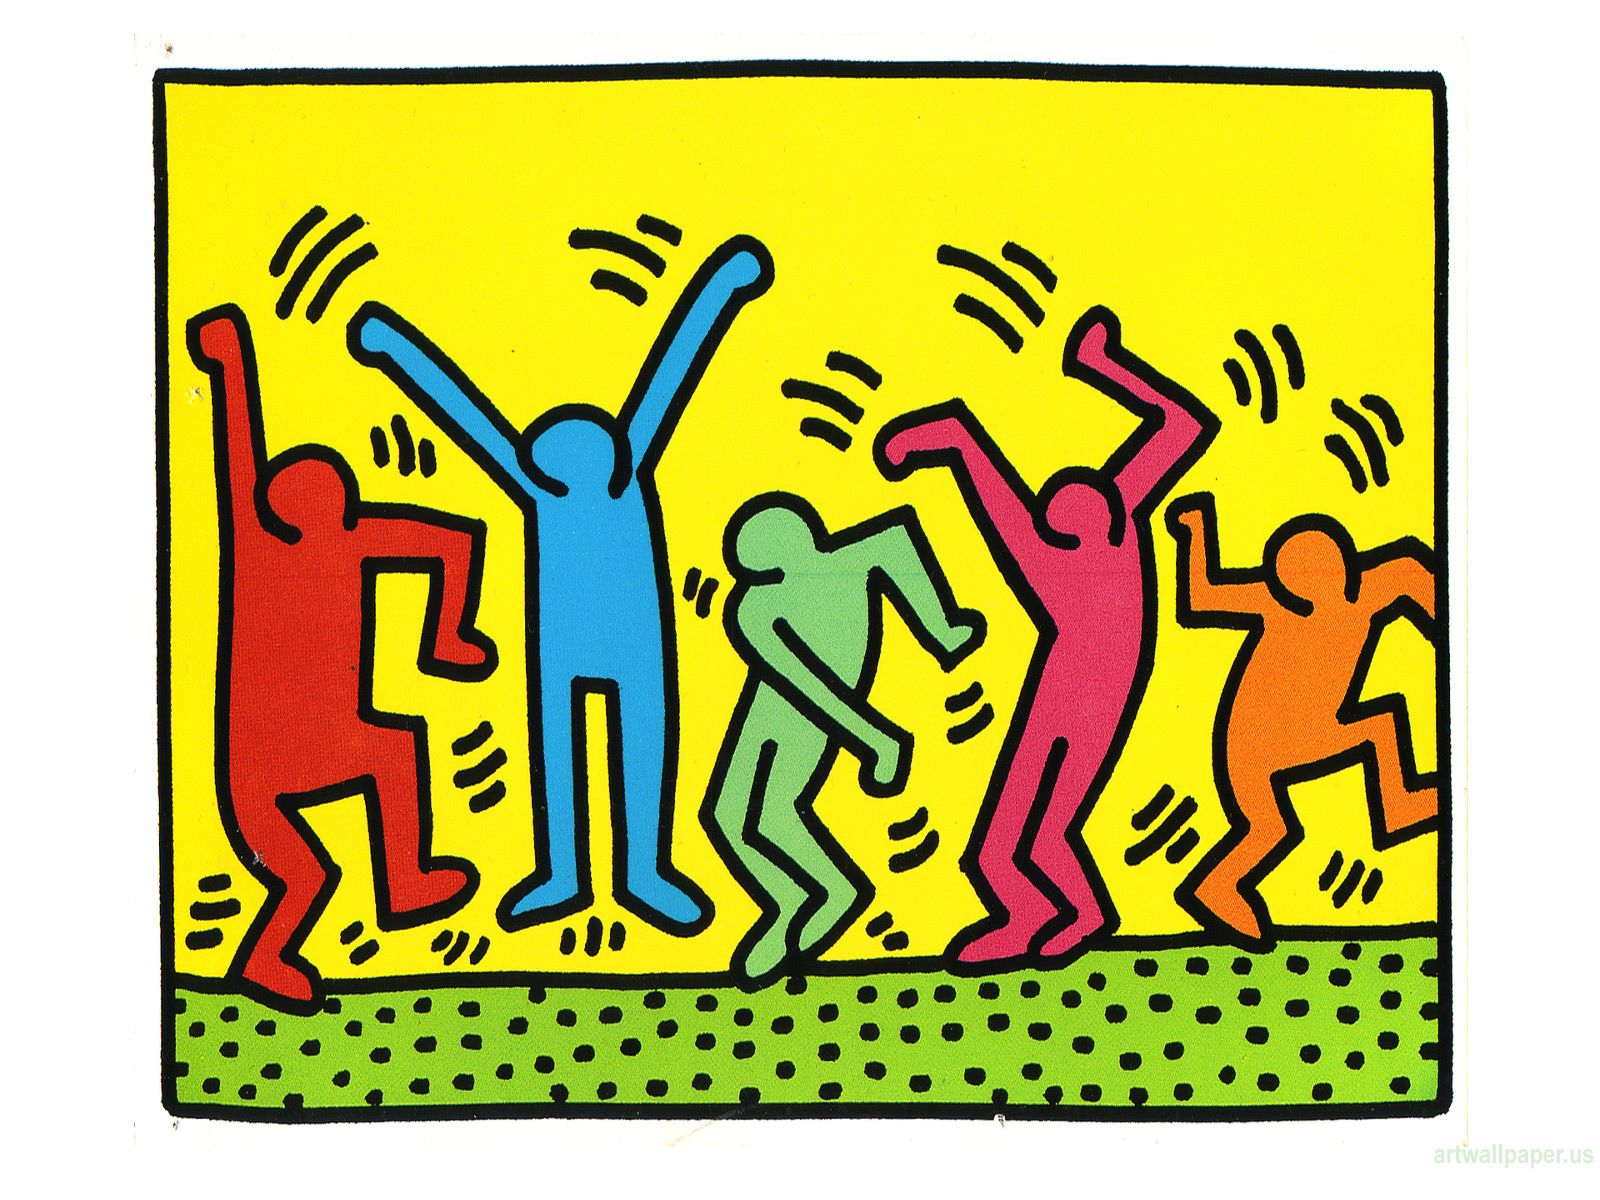 22 best images about keith haring on Pinterest | Keith haring ...